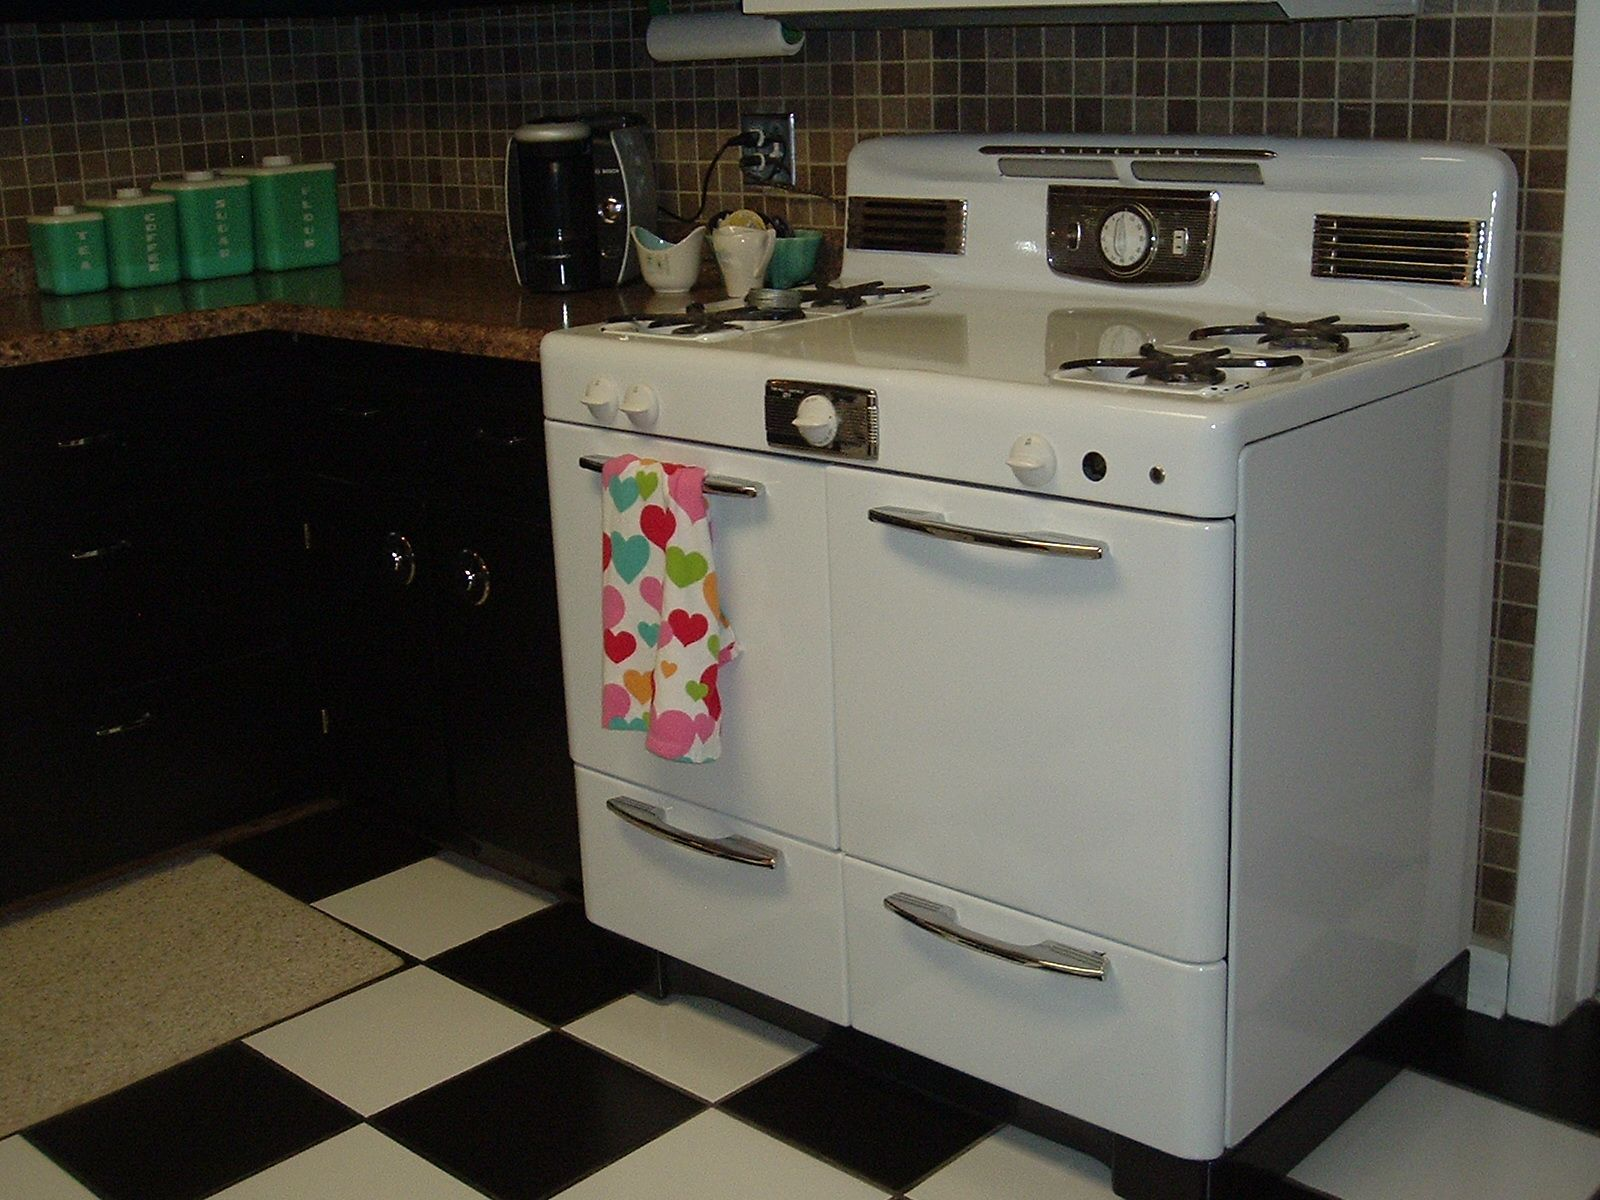 Uncategorized 1940s Kitchen Appliances 208 pictures of vintage stoves refrigerators and large appliances appliances